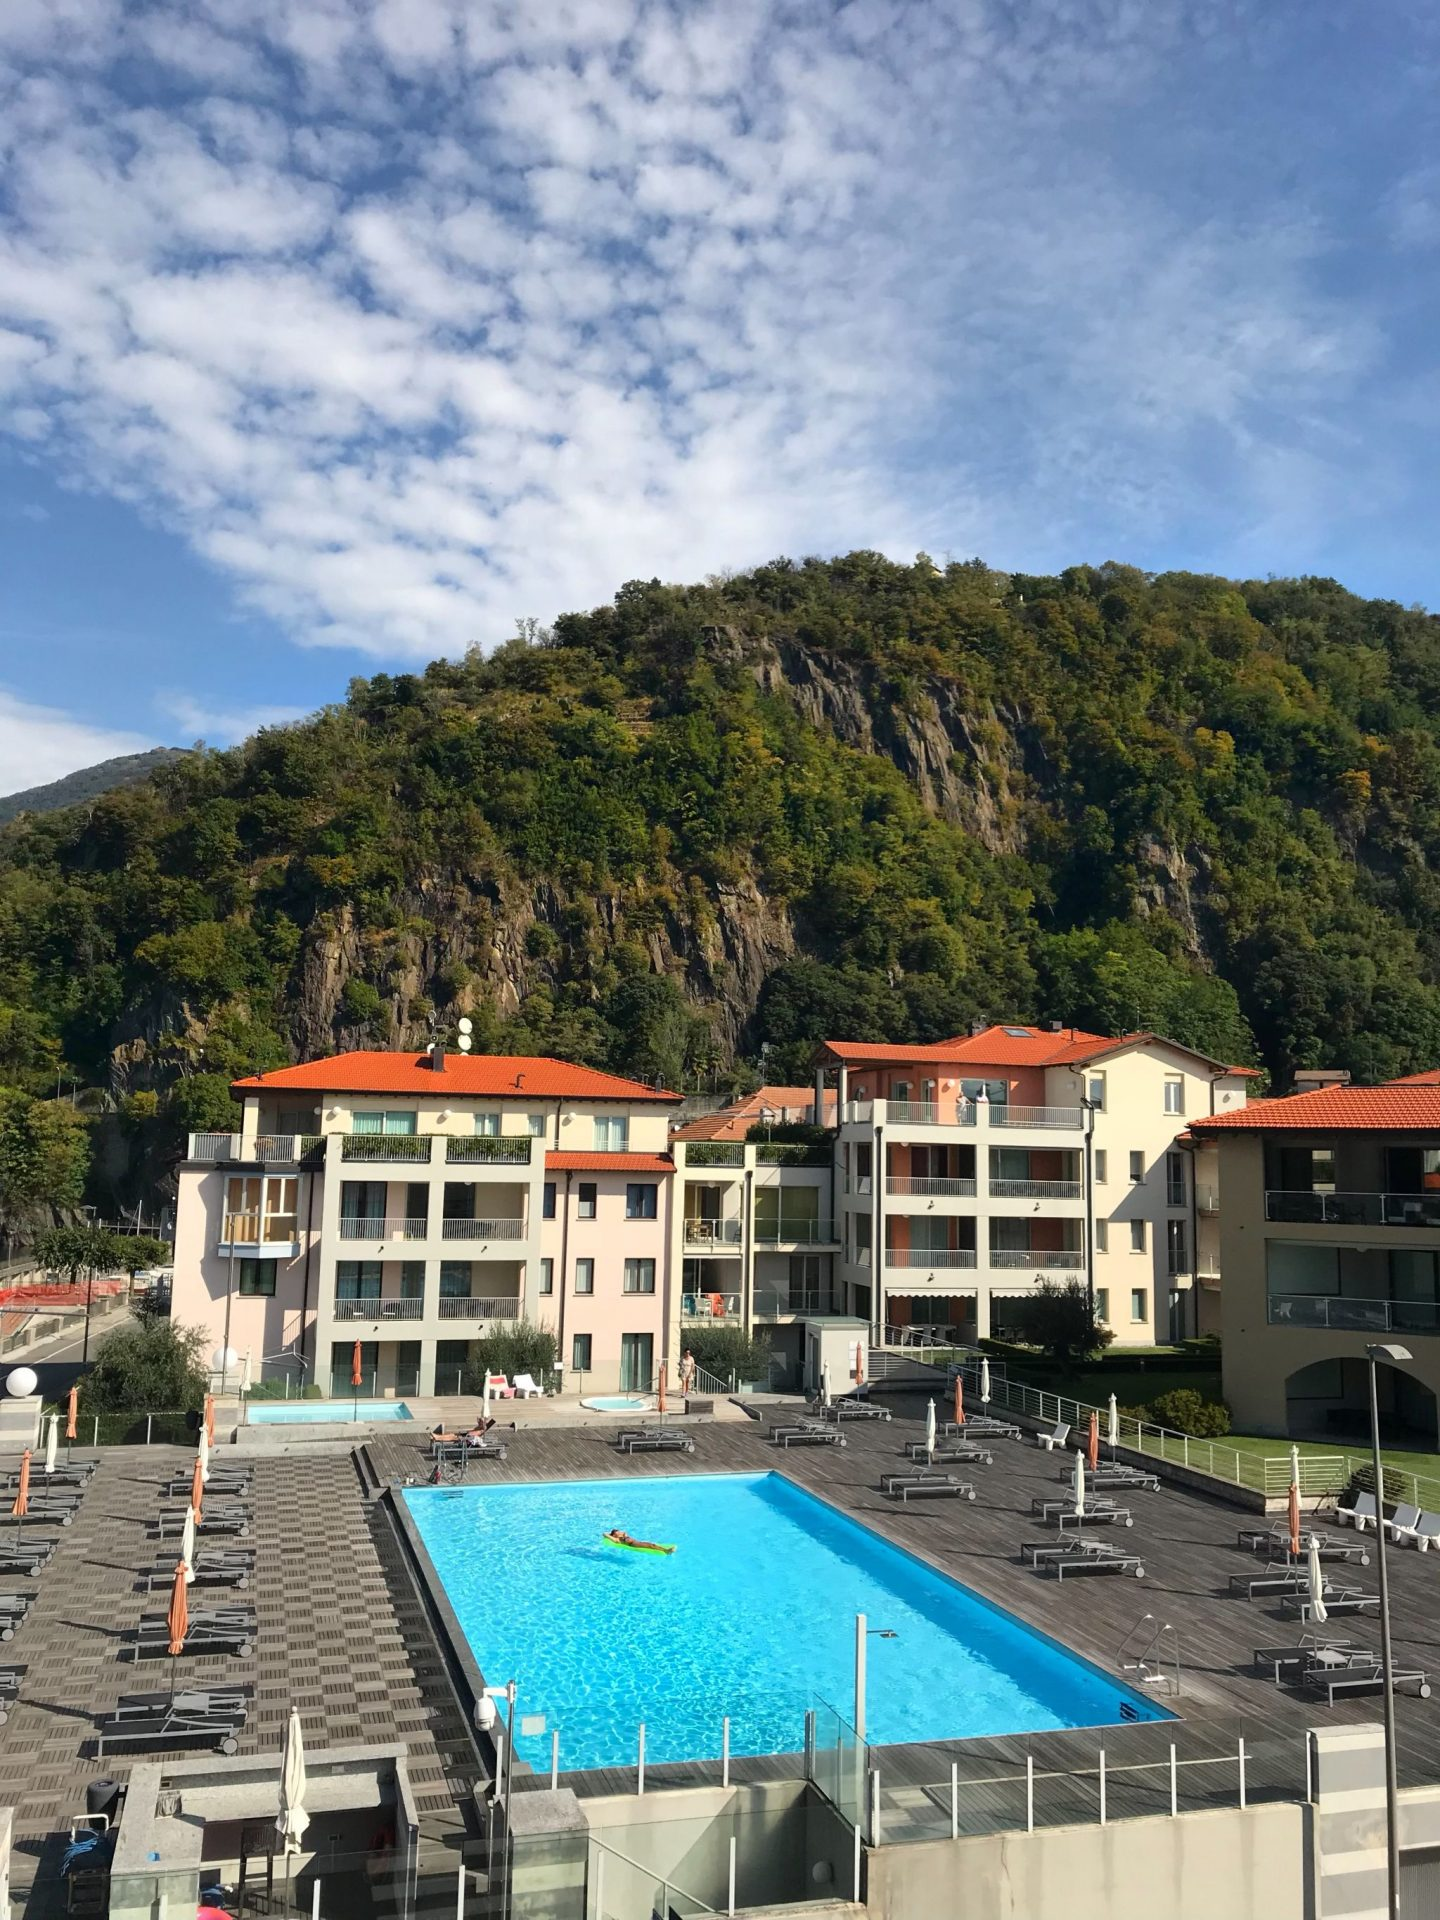 Picturesque pool and mountain views on holiday at Golfo Gabella Resort Lake Maggiore Italy